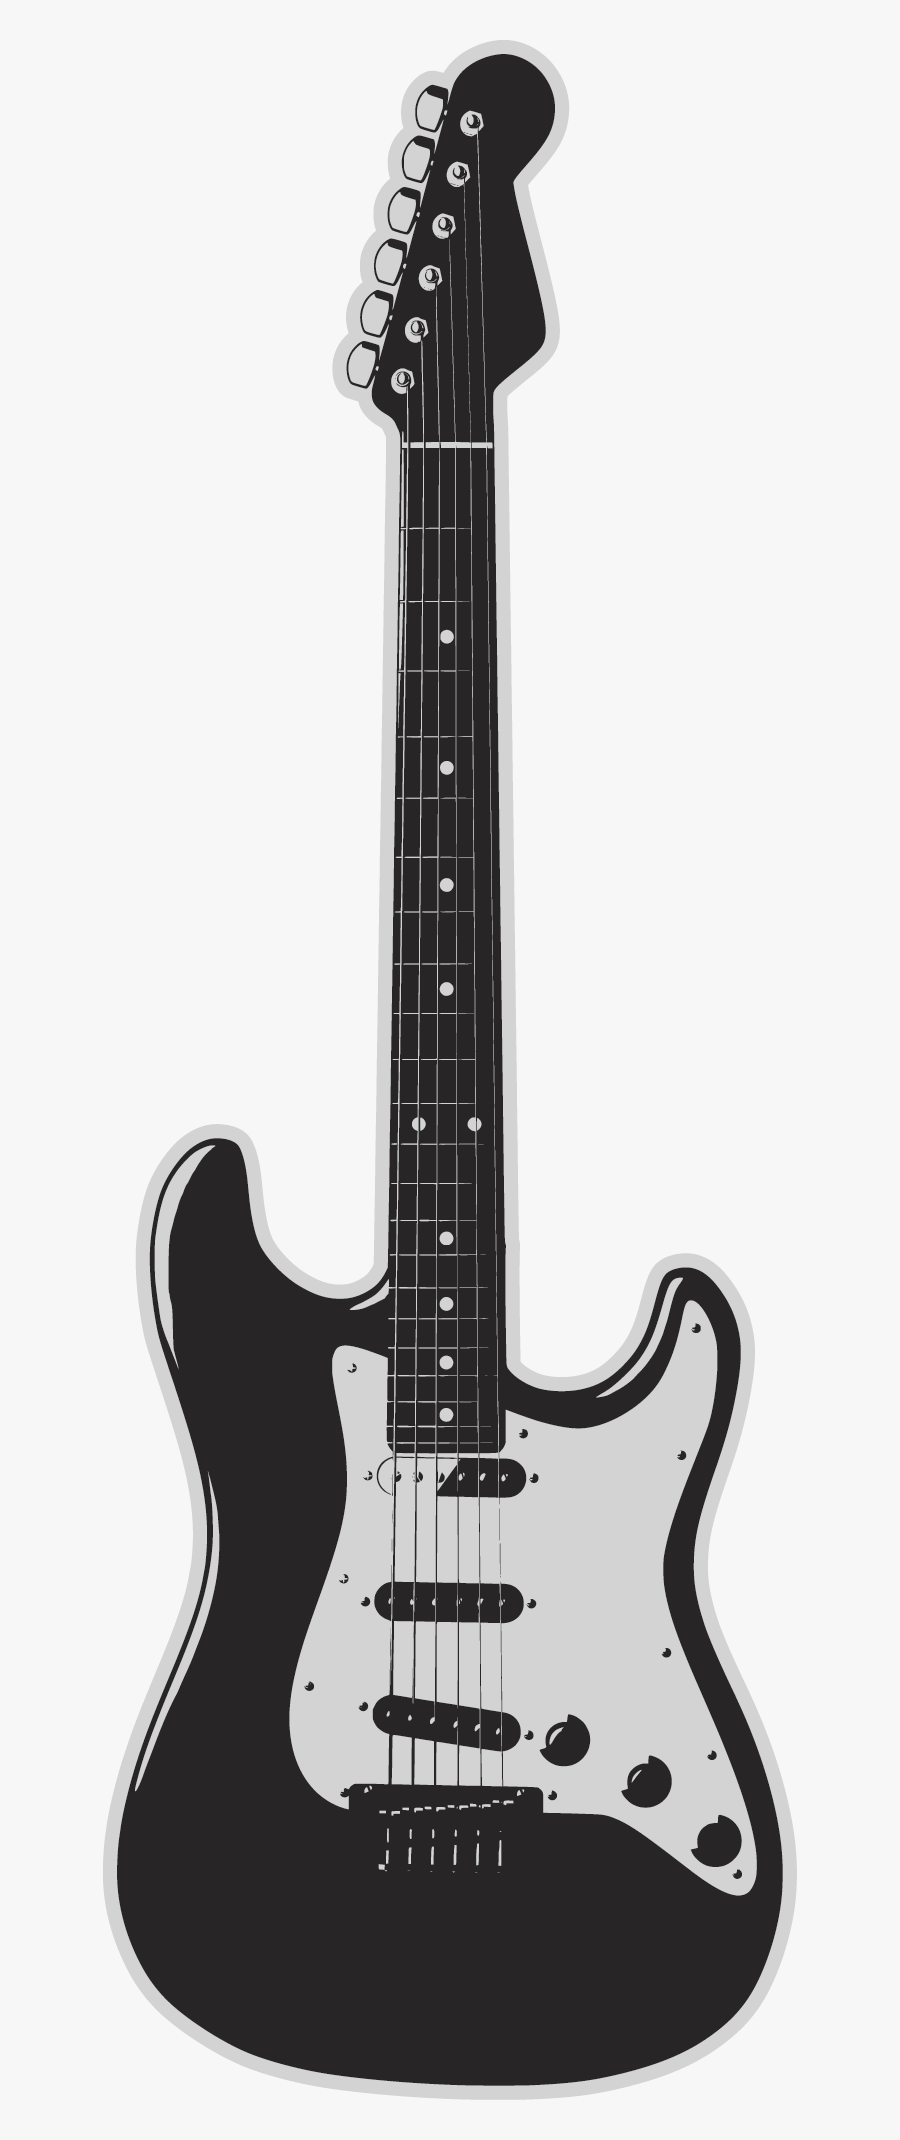 Electric Band Fender Guitar Instrument Vector Stratocaster - Squier Stratocaster Vintage Modified Surf Red, Transparent Clipart